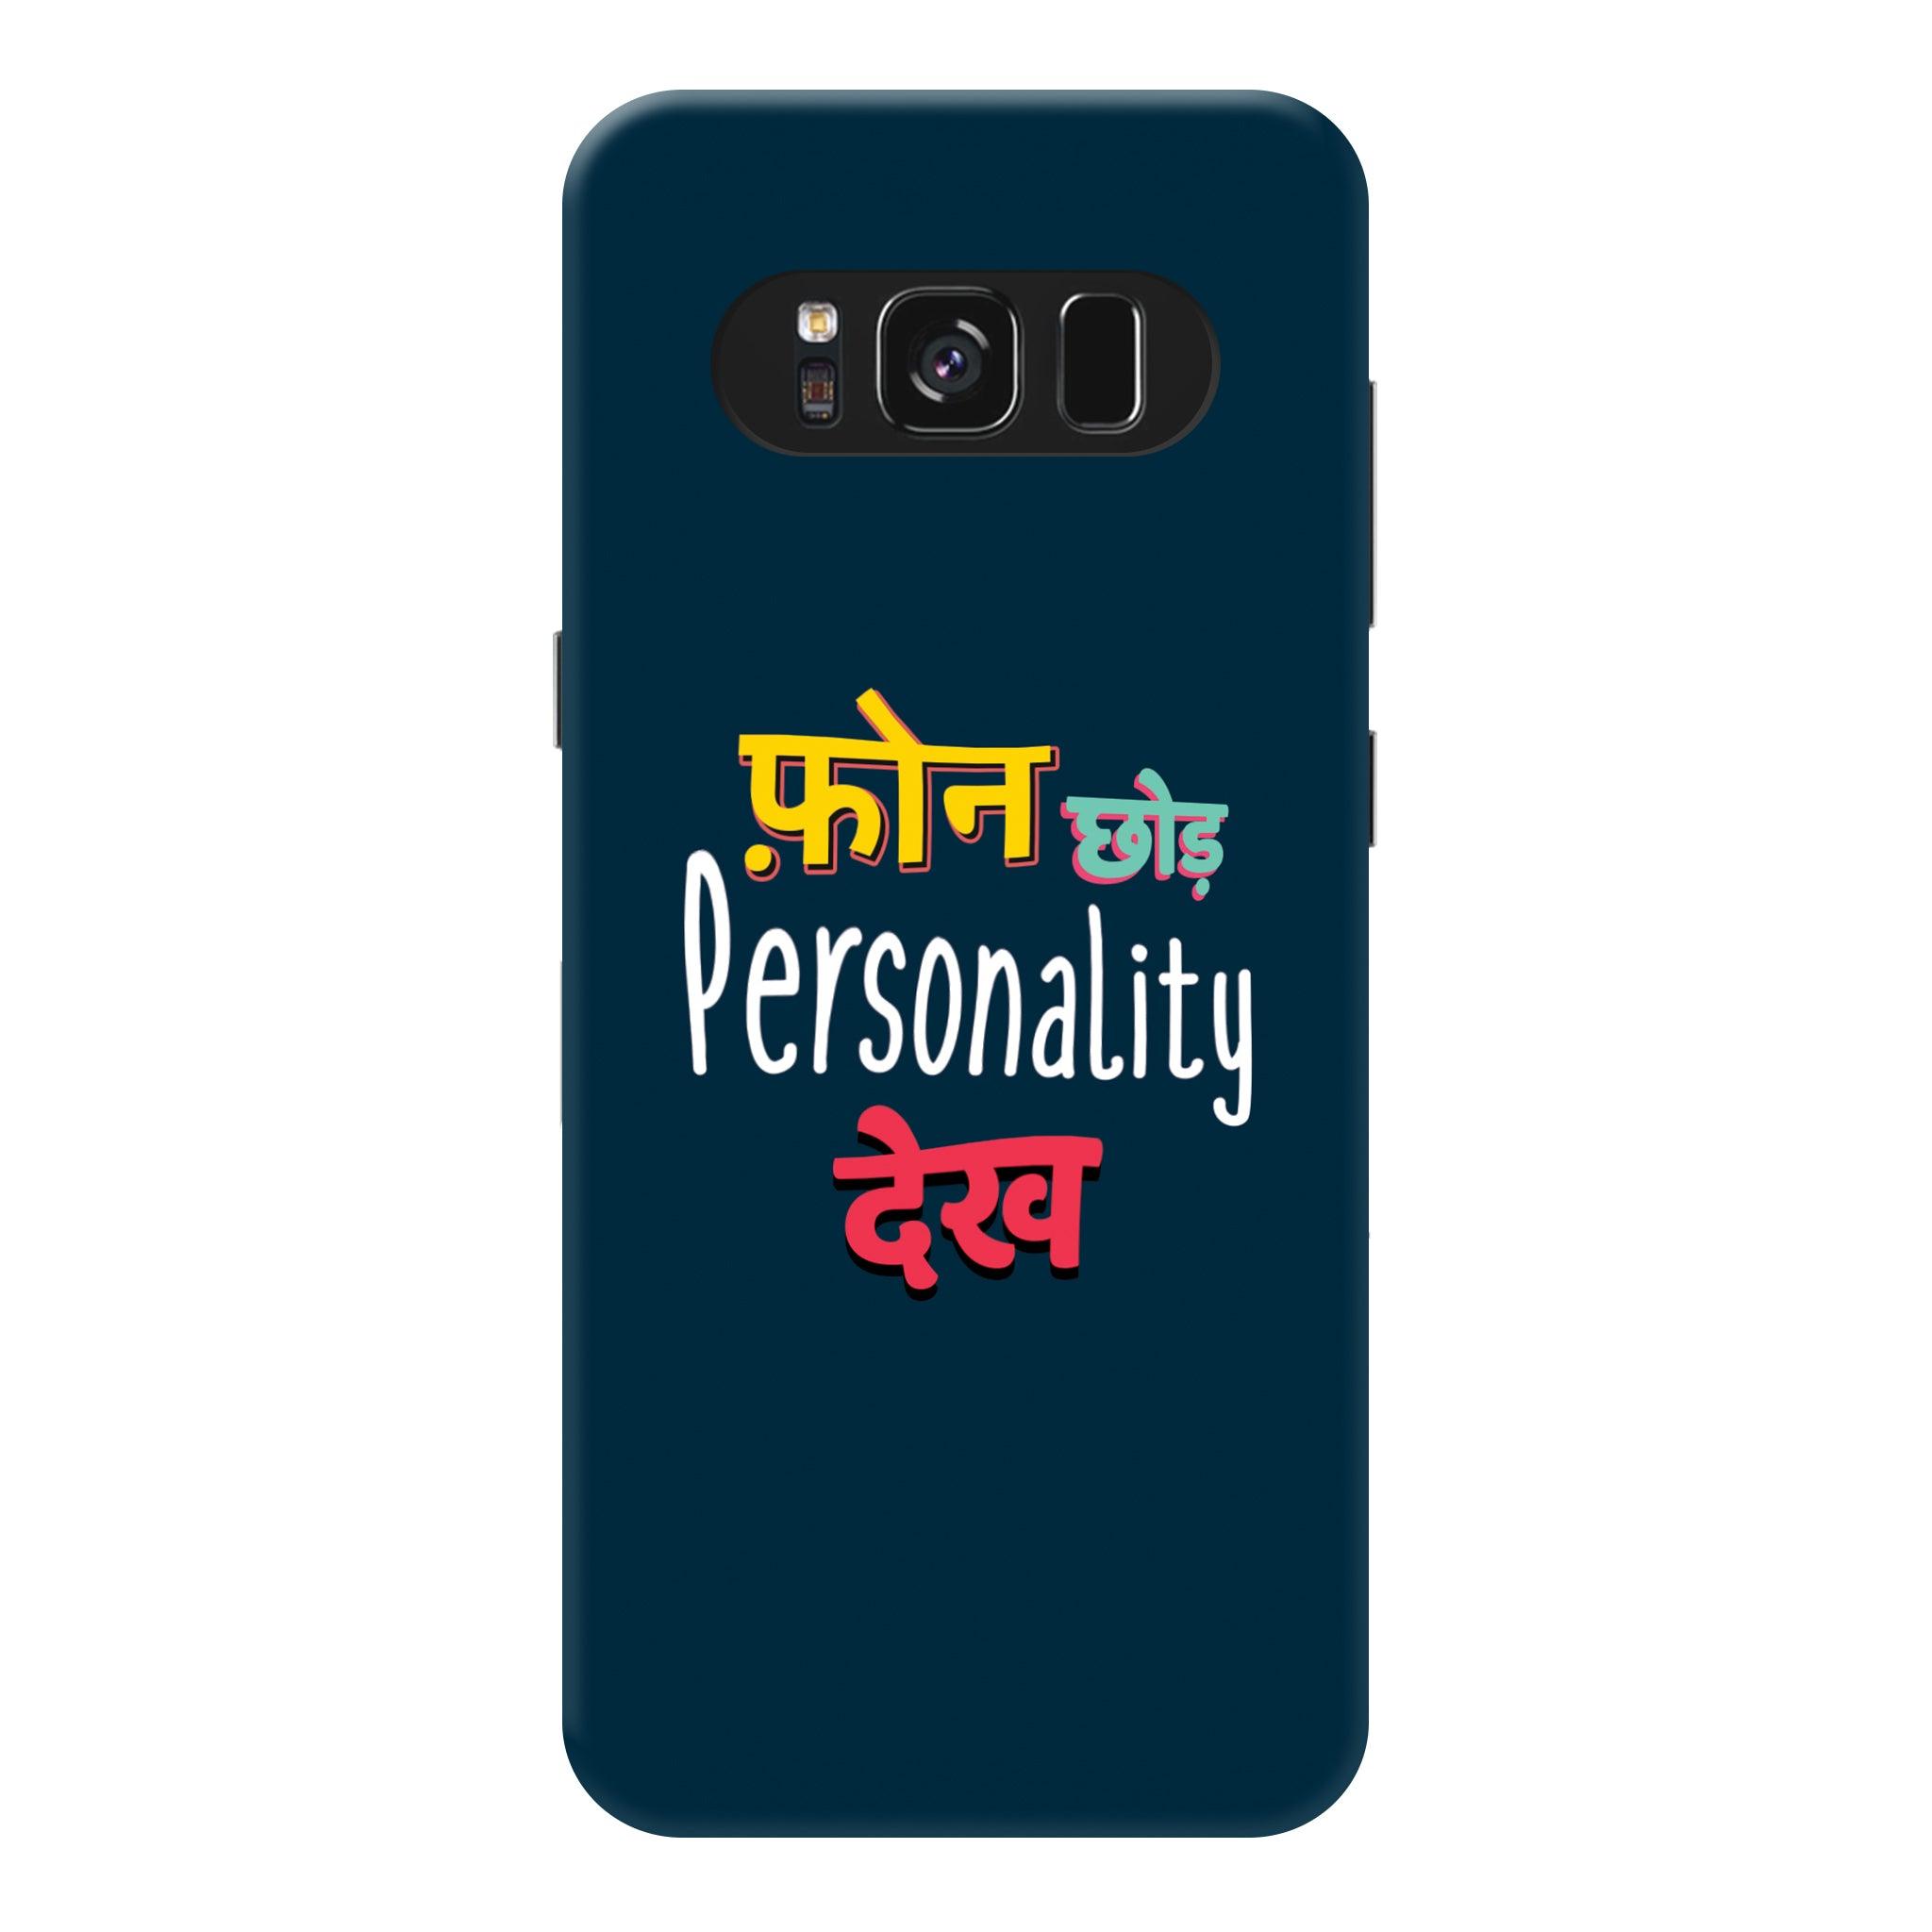 Personality Dekh Samsung Galaxy S8 Cover